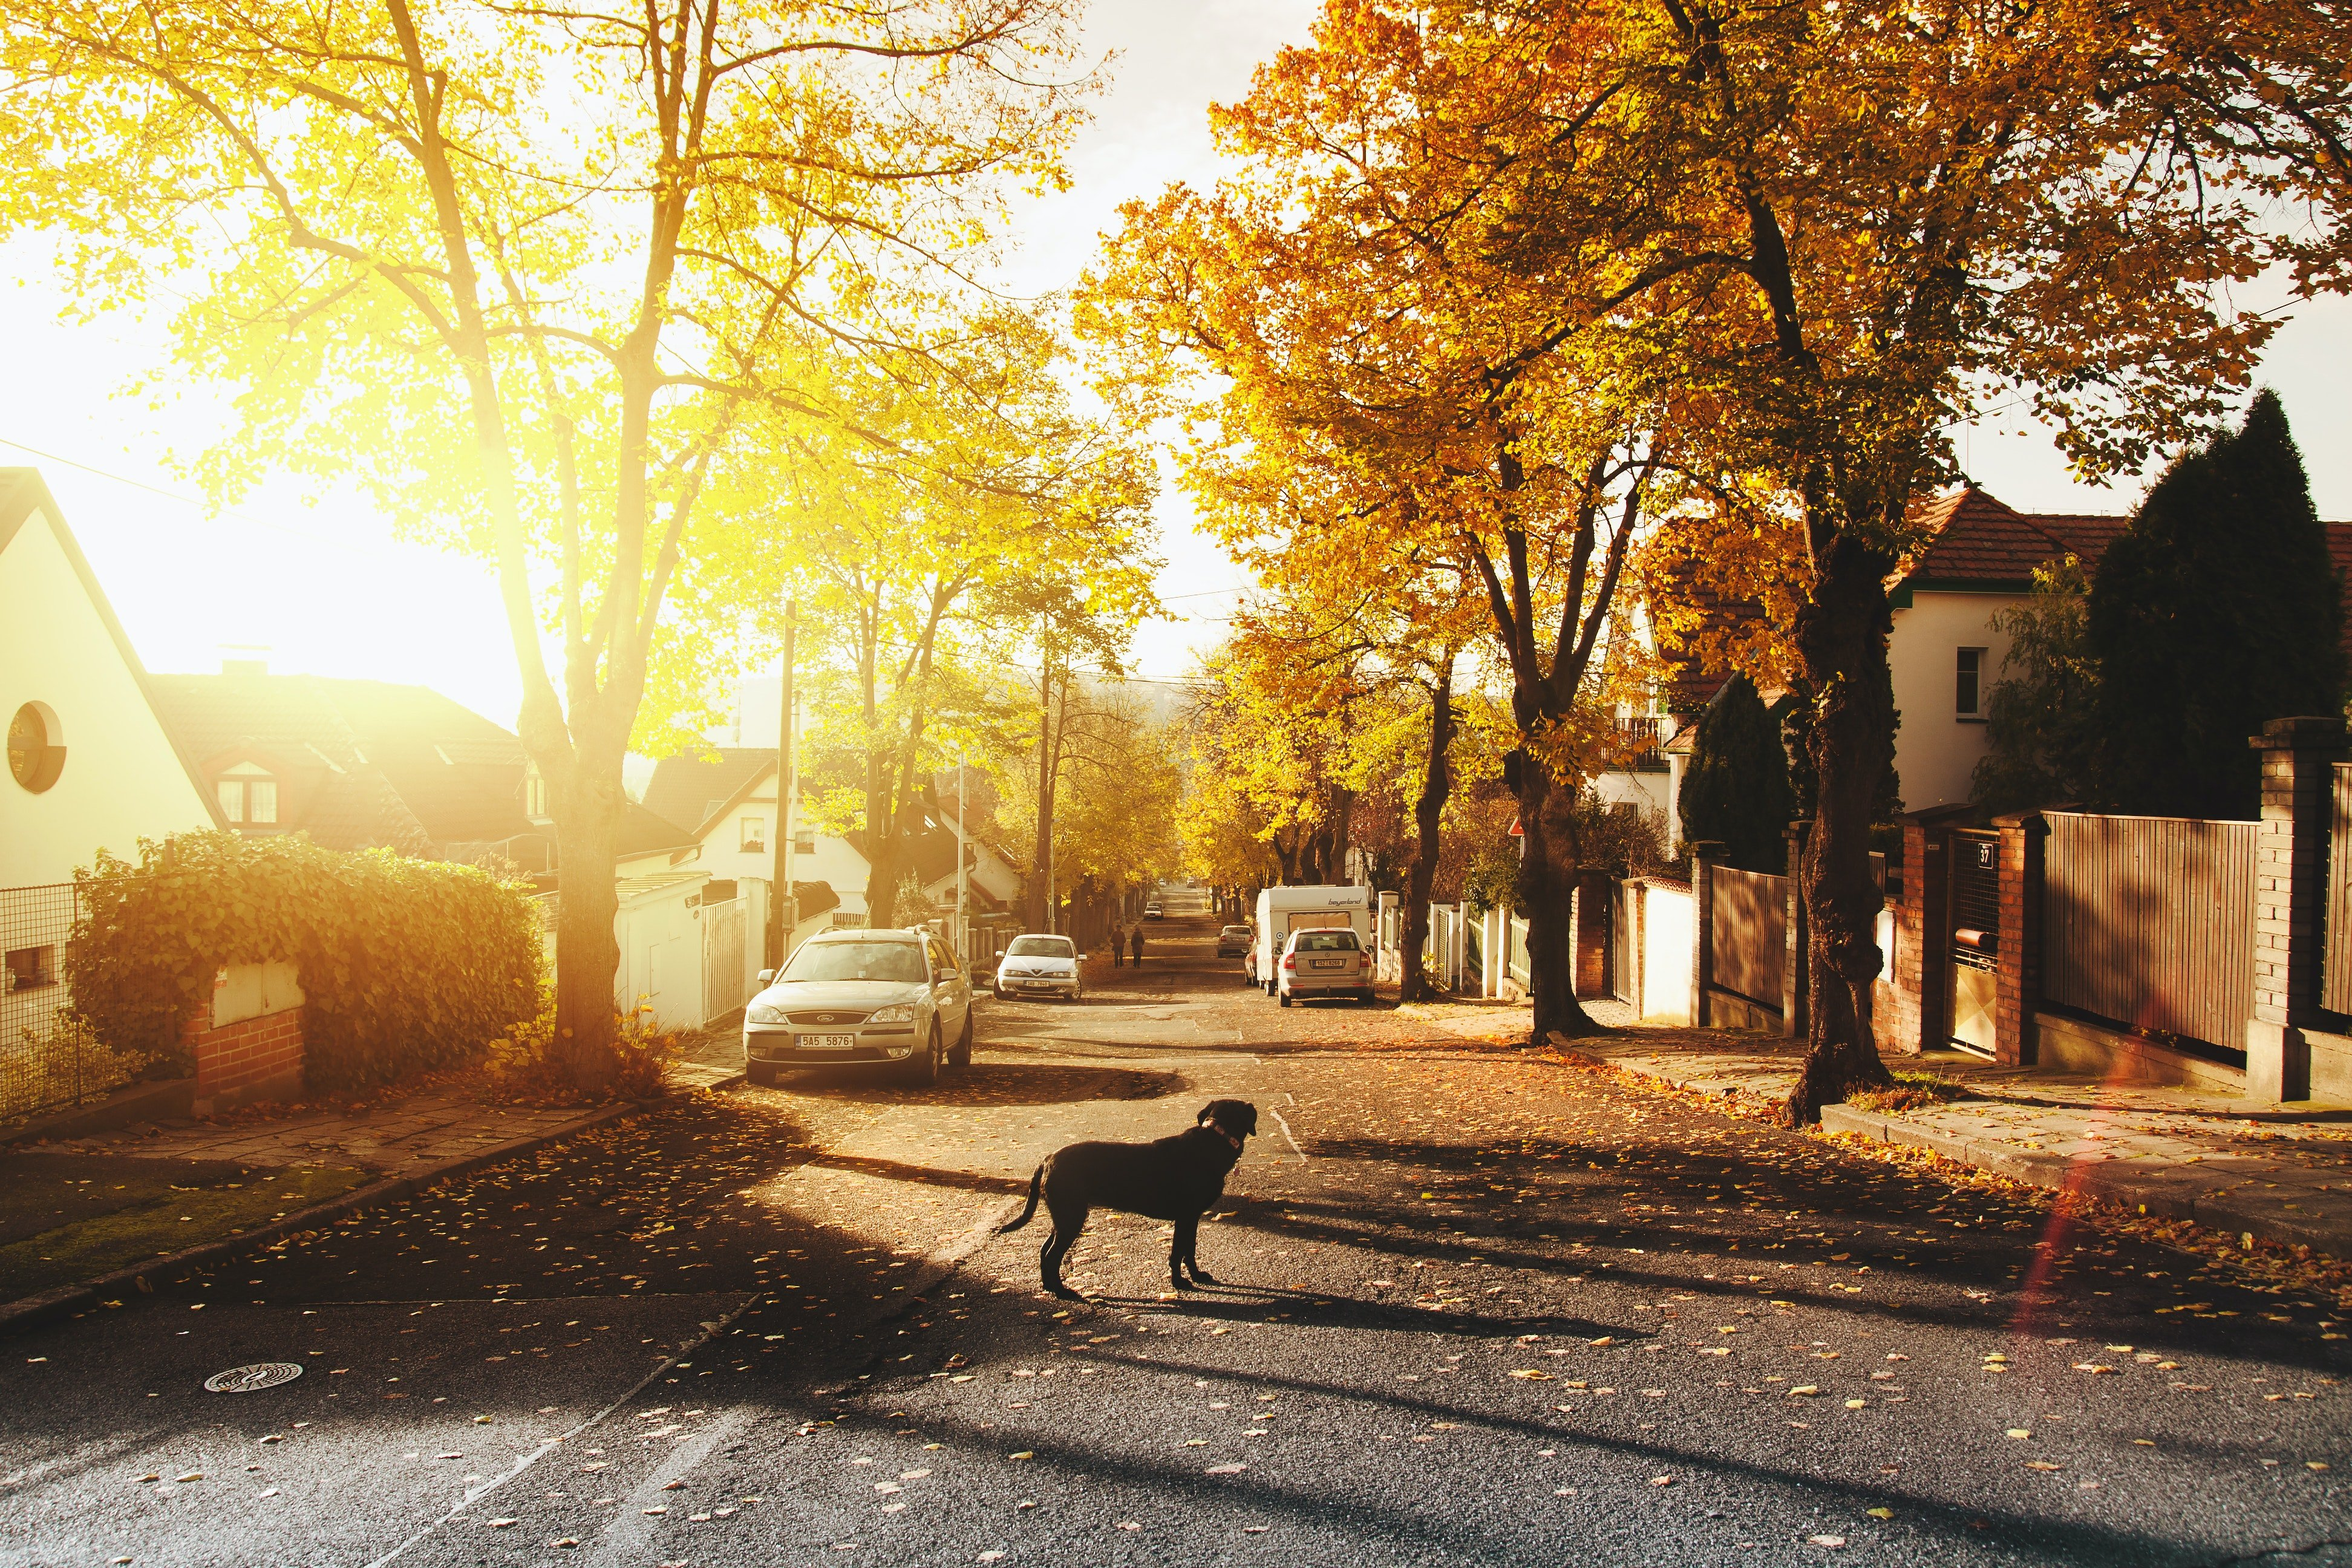 A dog in the middle of a street | Photo: Pexels